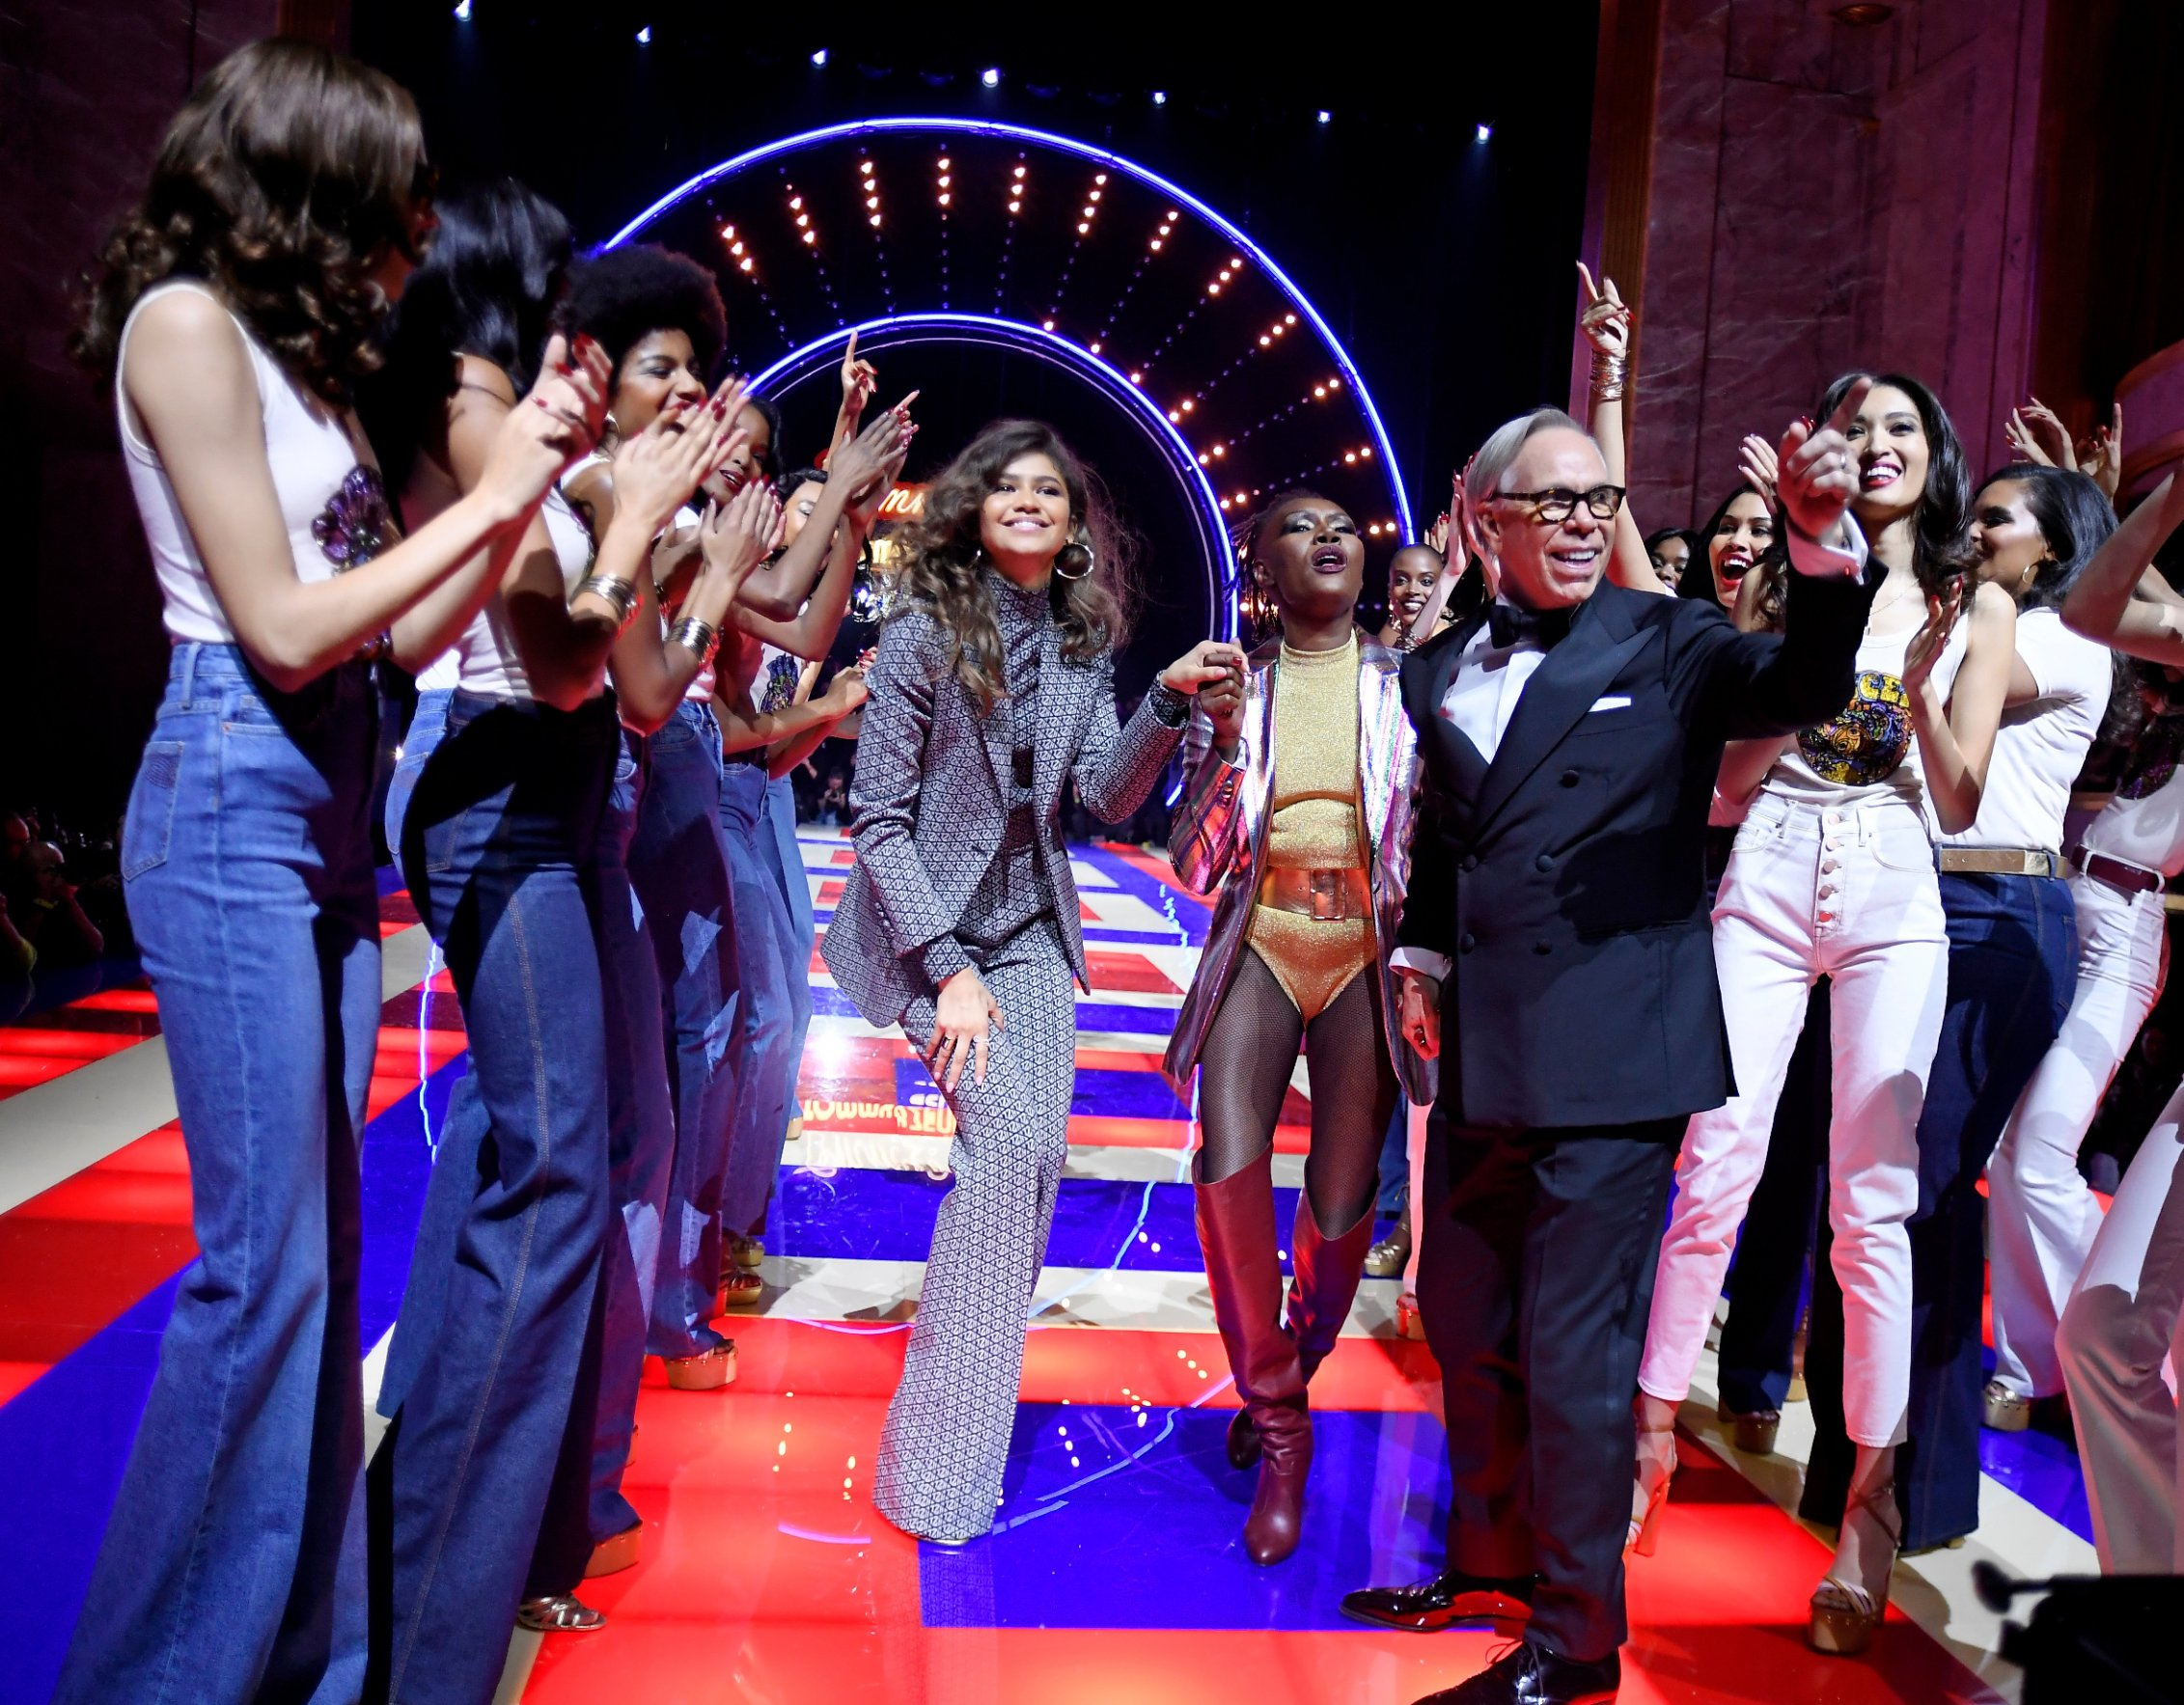 Zendaya, Grace Jones, Tommy Hilfiger and models on the catwalk Tommy Hilfiger show, Runway, Fall Winter 2019, Paris Fashion Week, France - 02 Mar 2019, Image: 416926947, License: Rights-managed, Restrictions: , Model Release: no, Credit line: Profimedia, TEMP Rex Features